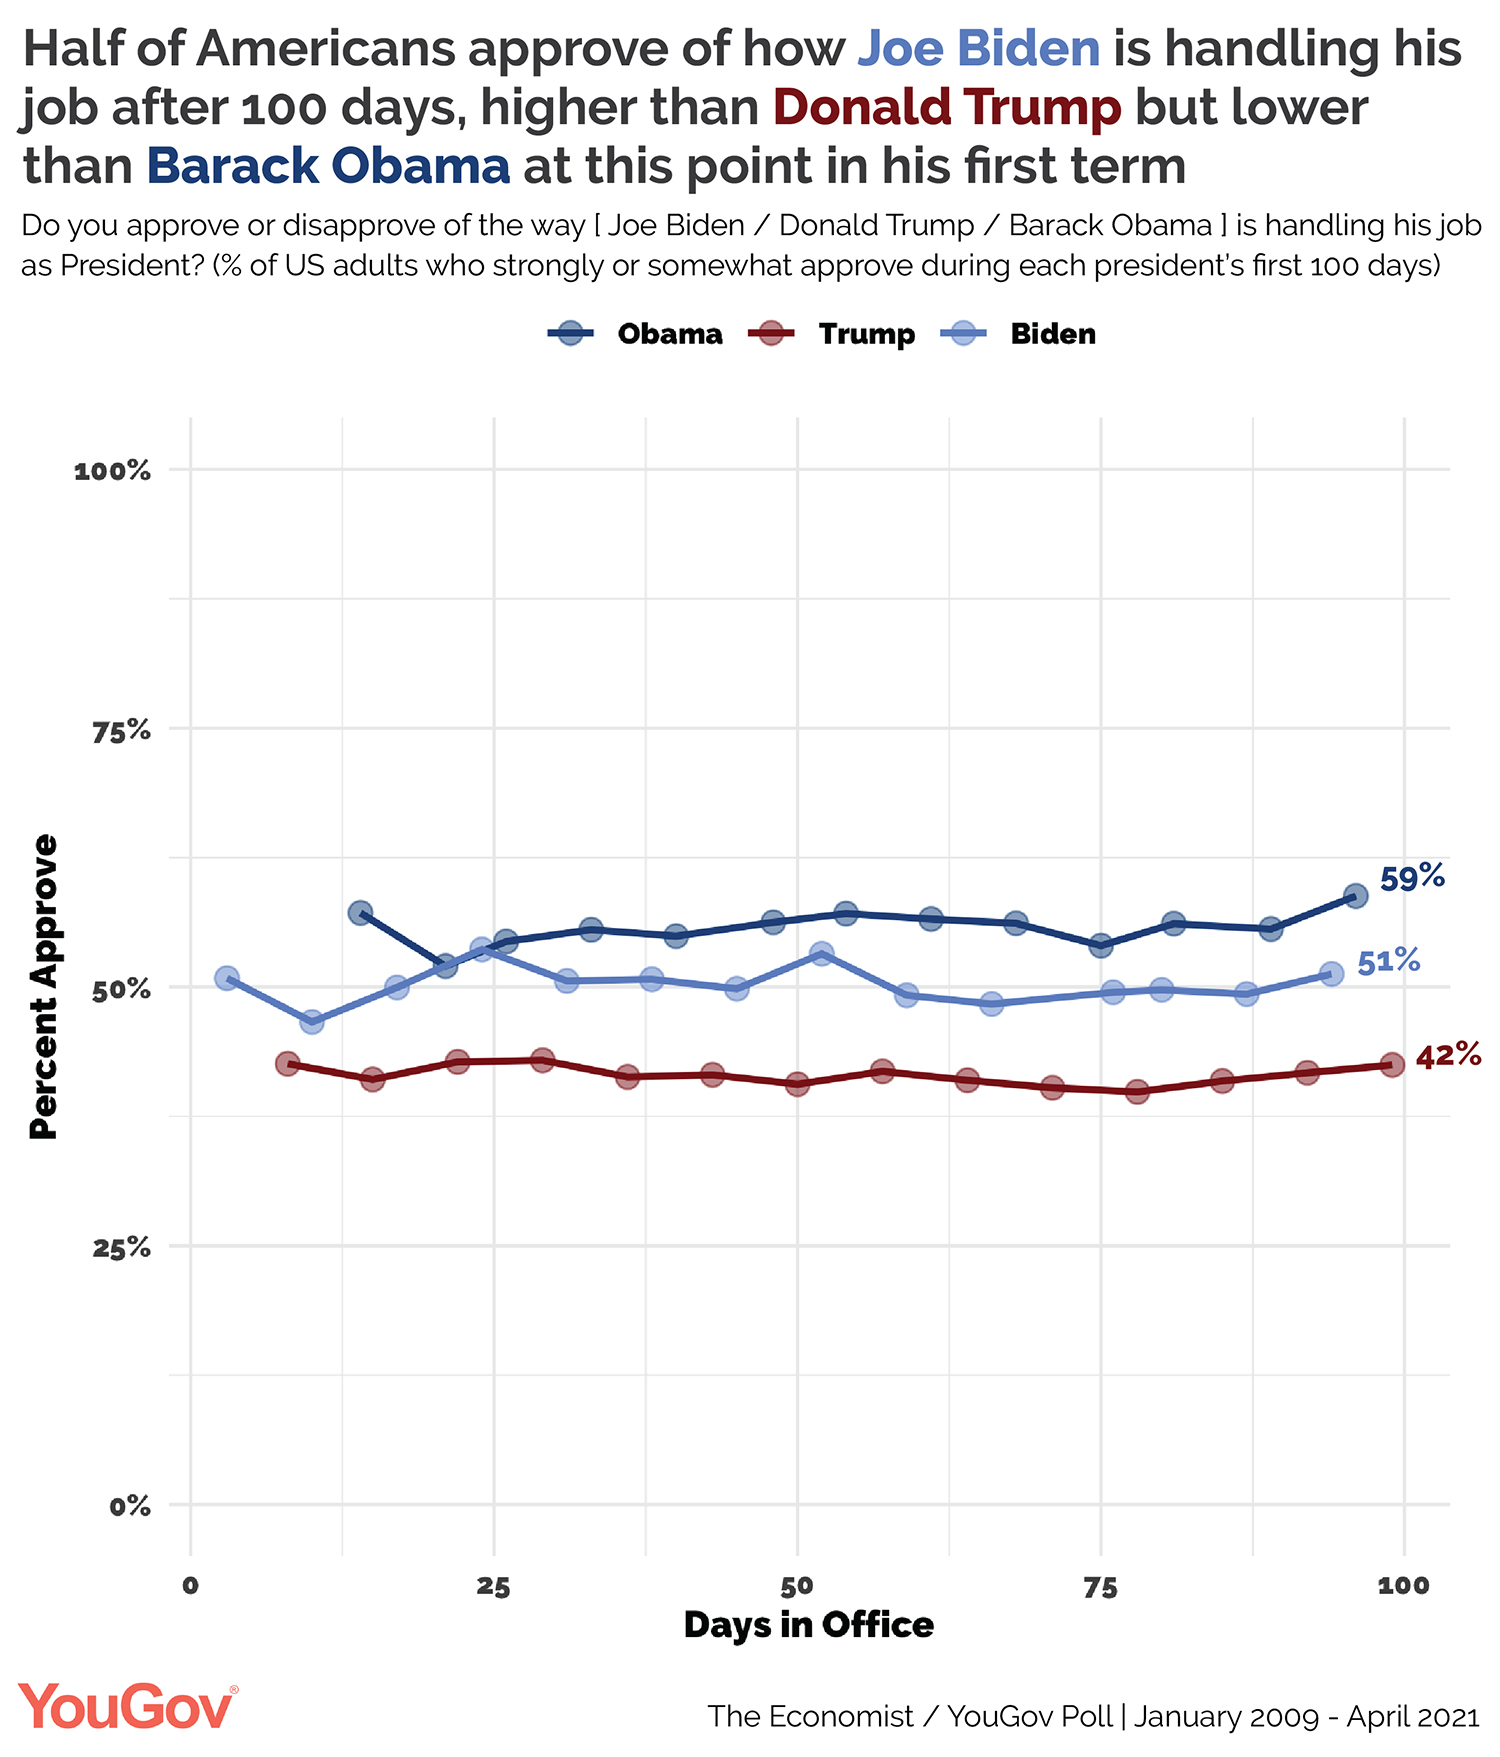 How Joe Biden's job approval compares to Donald Trump and Barack Obama after 100 days in office